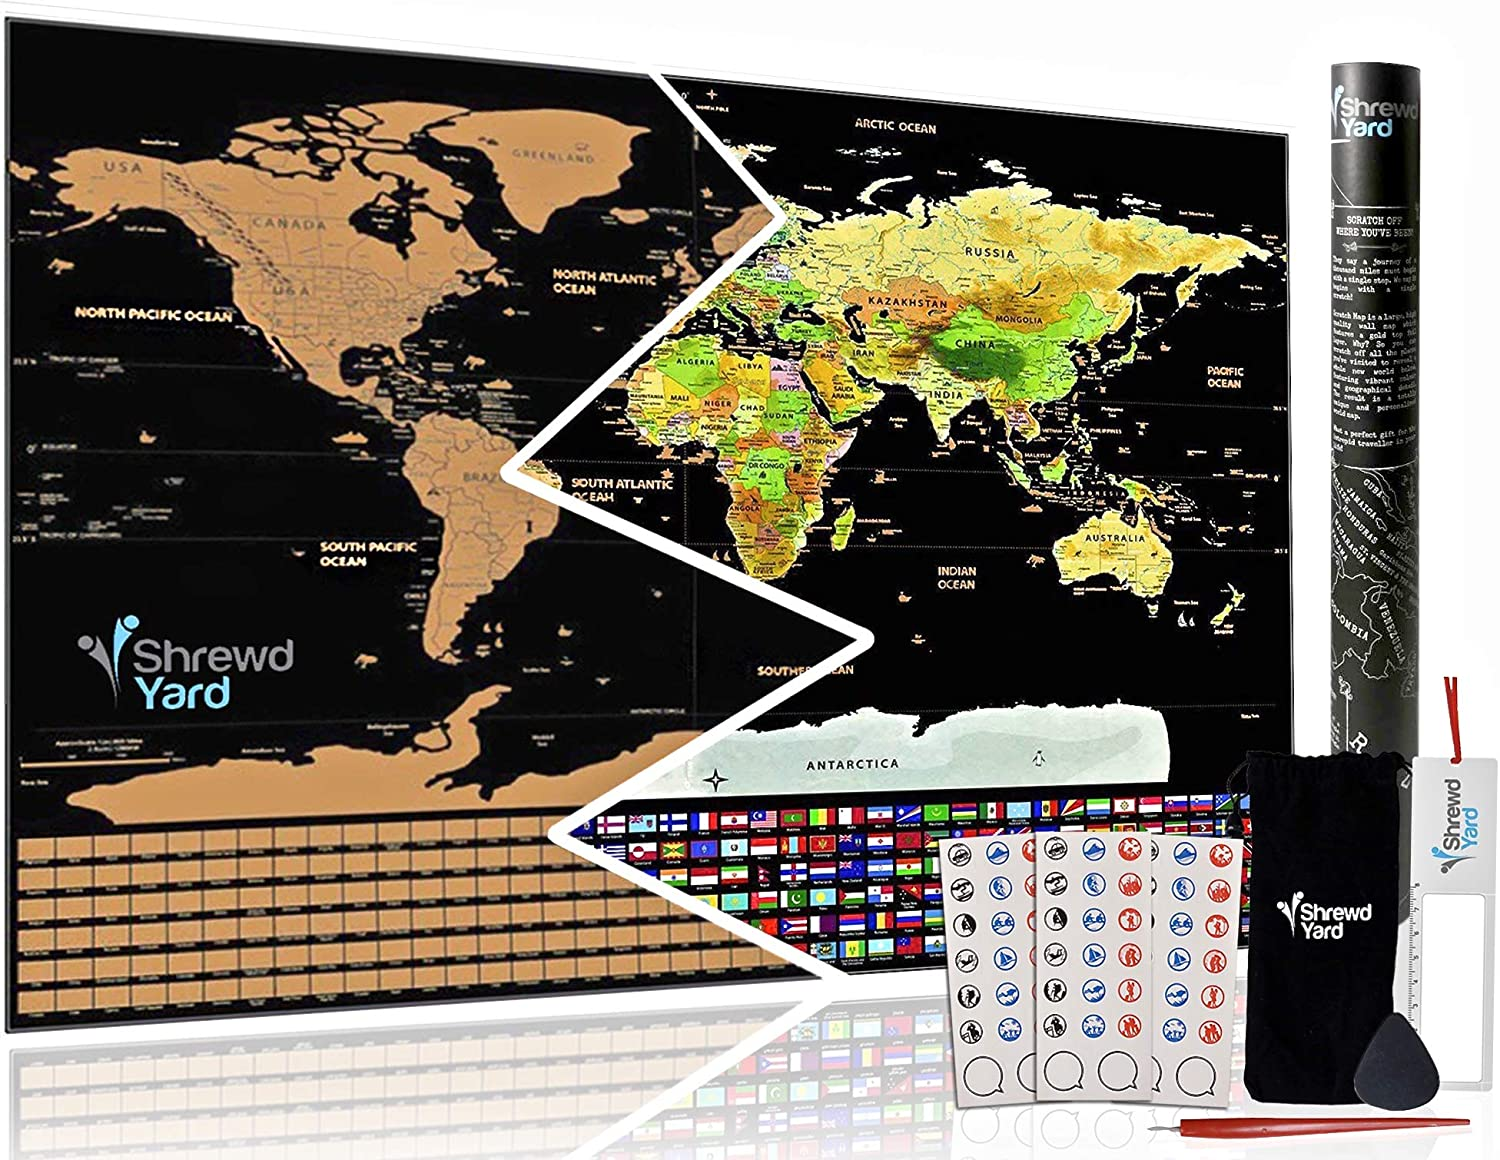 Large Scratch Off Travel Map of the world Poster by ShrewdYard - Scratchable country flags and USA states - keep track of the places you've visited around the globe - detailed borders, for travellers! Ltd. JX001001